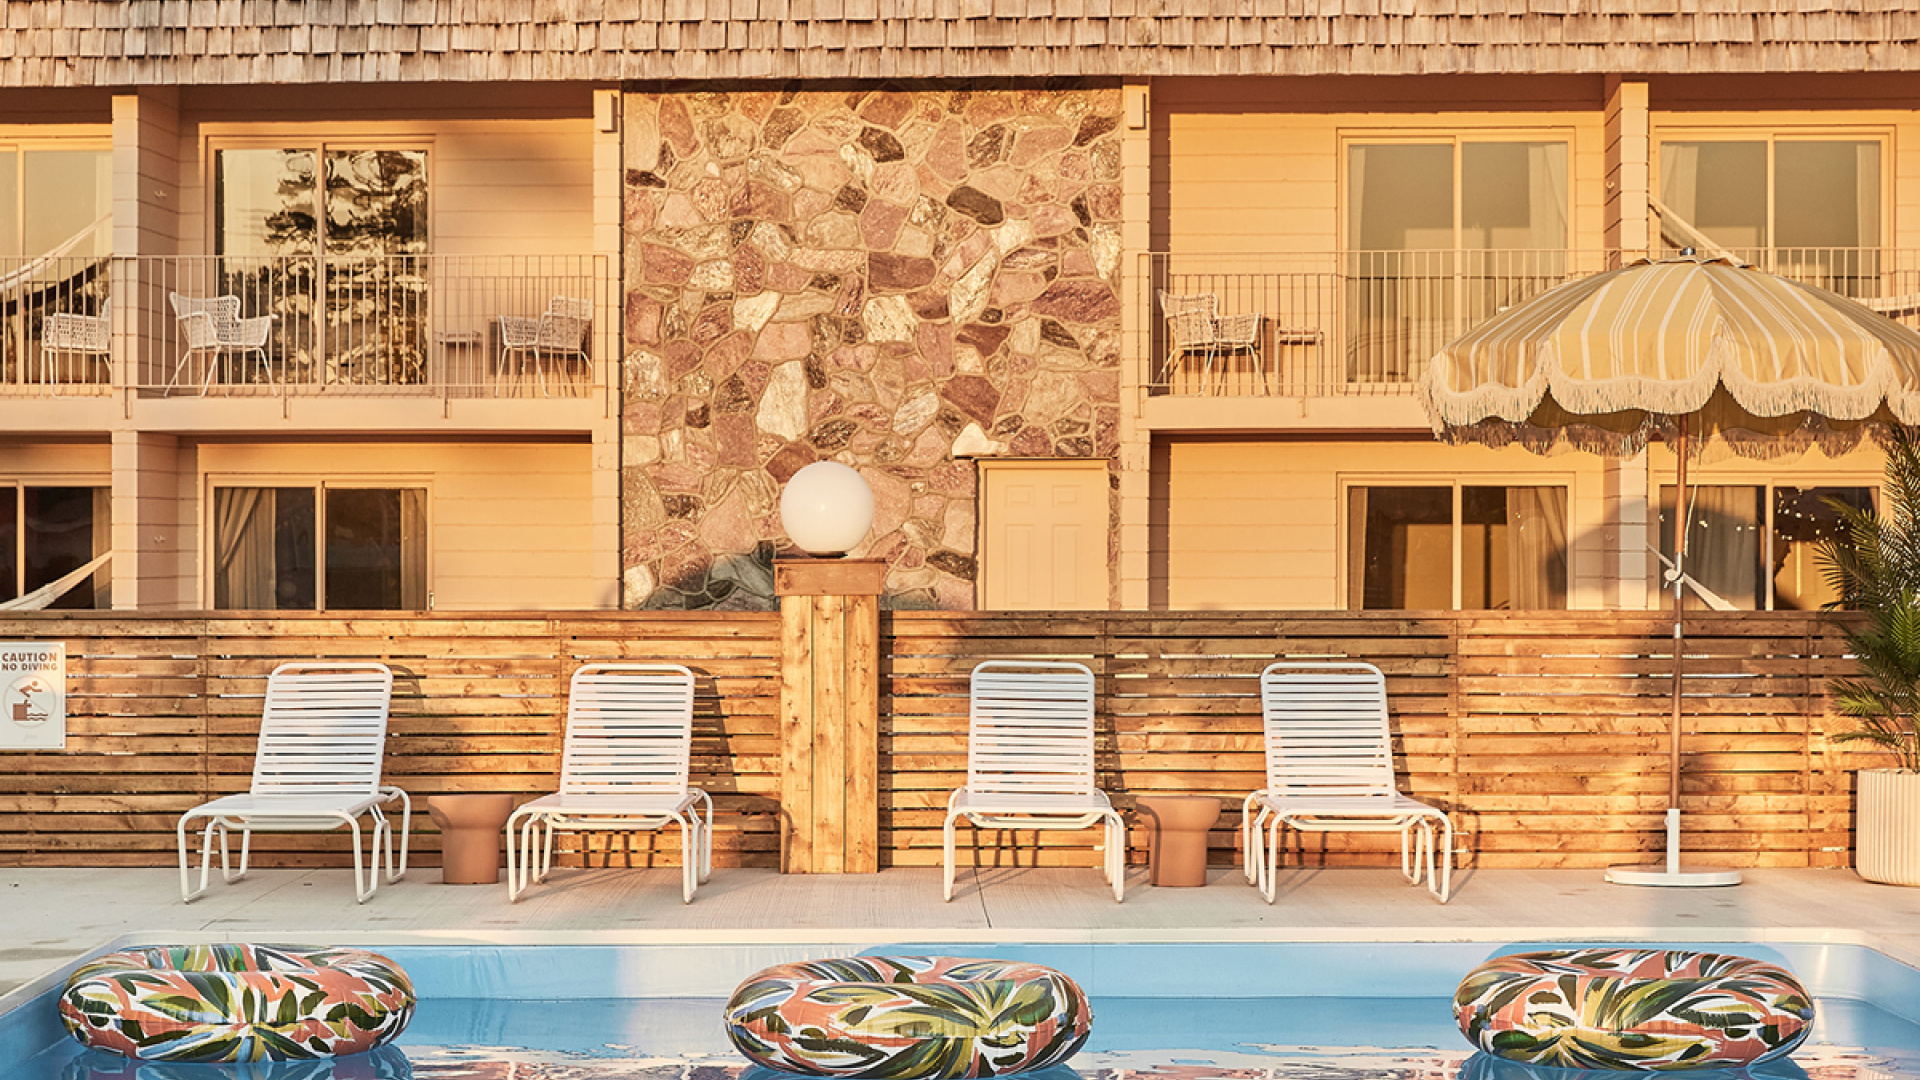 The June Motel and Heydays Restaurant, Sauble Beach | Outdoor pool